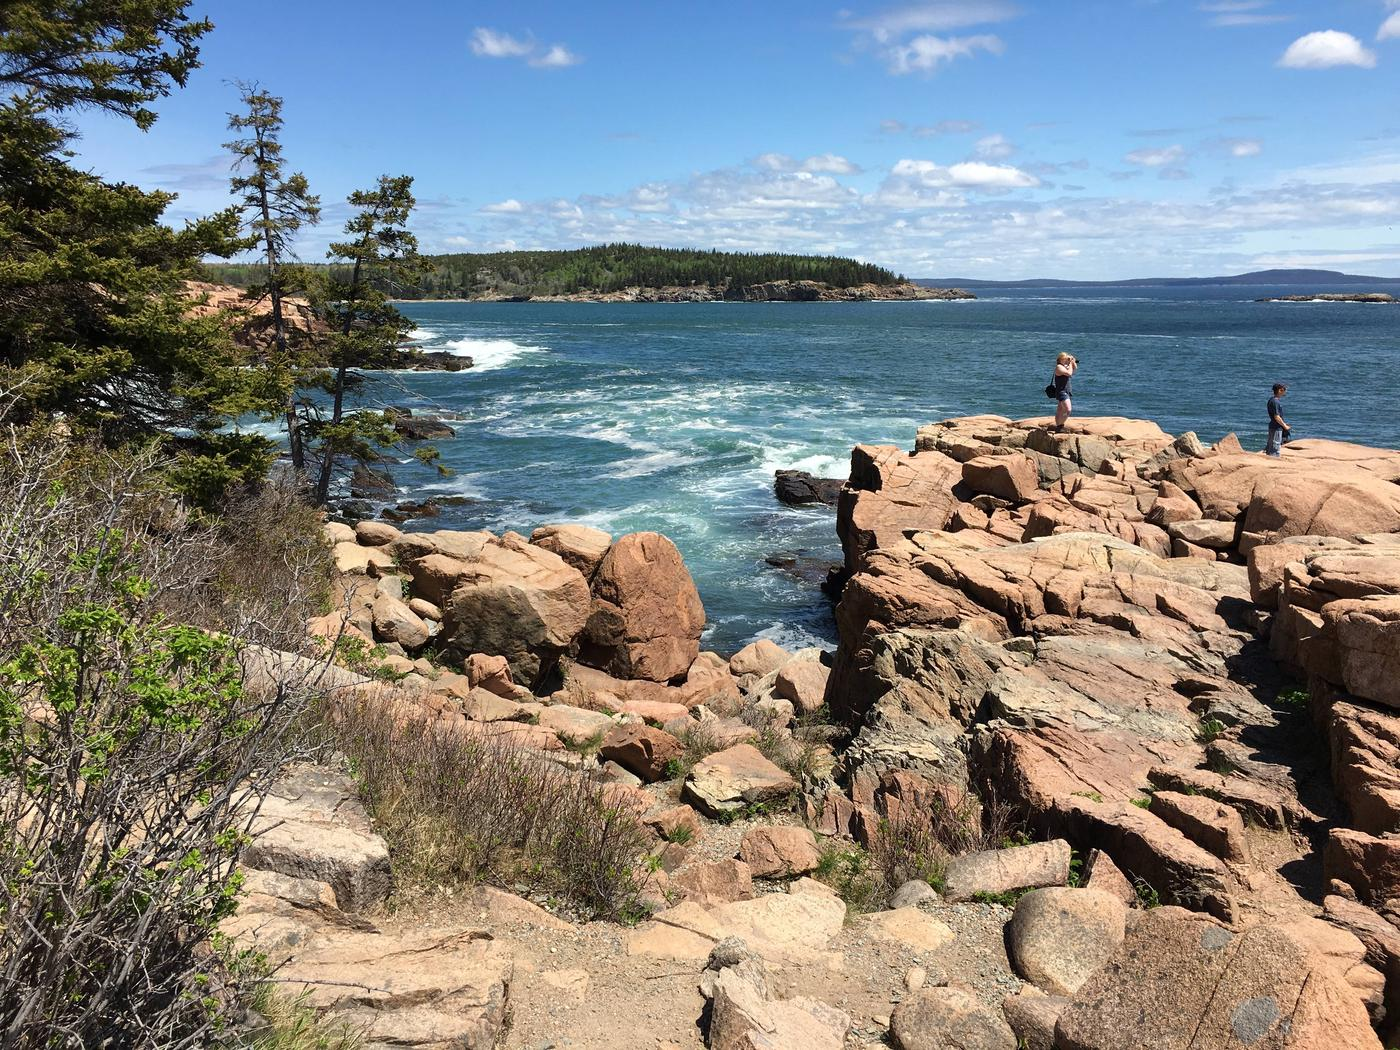 Two visitors walking along rocky shore with tree covered peninsula in background.Visitor enjoy stunning views along Acadia's rocky shore.